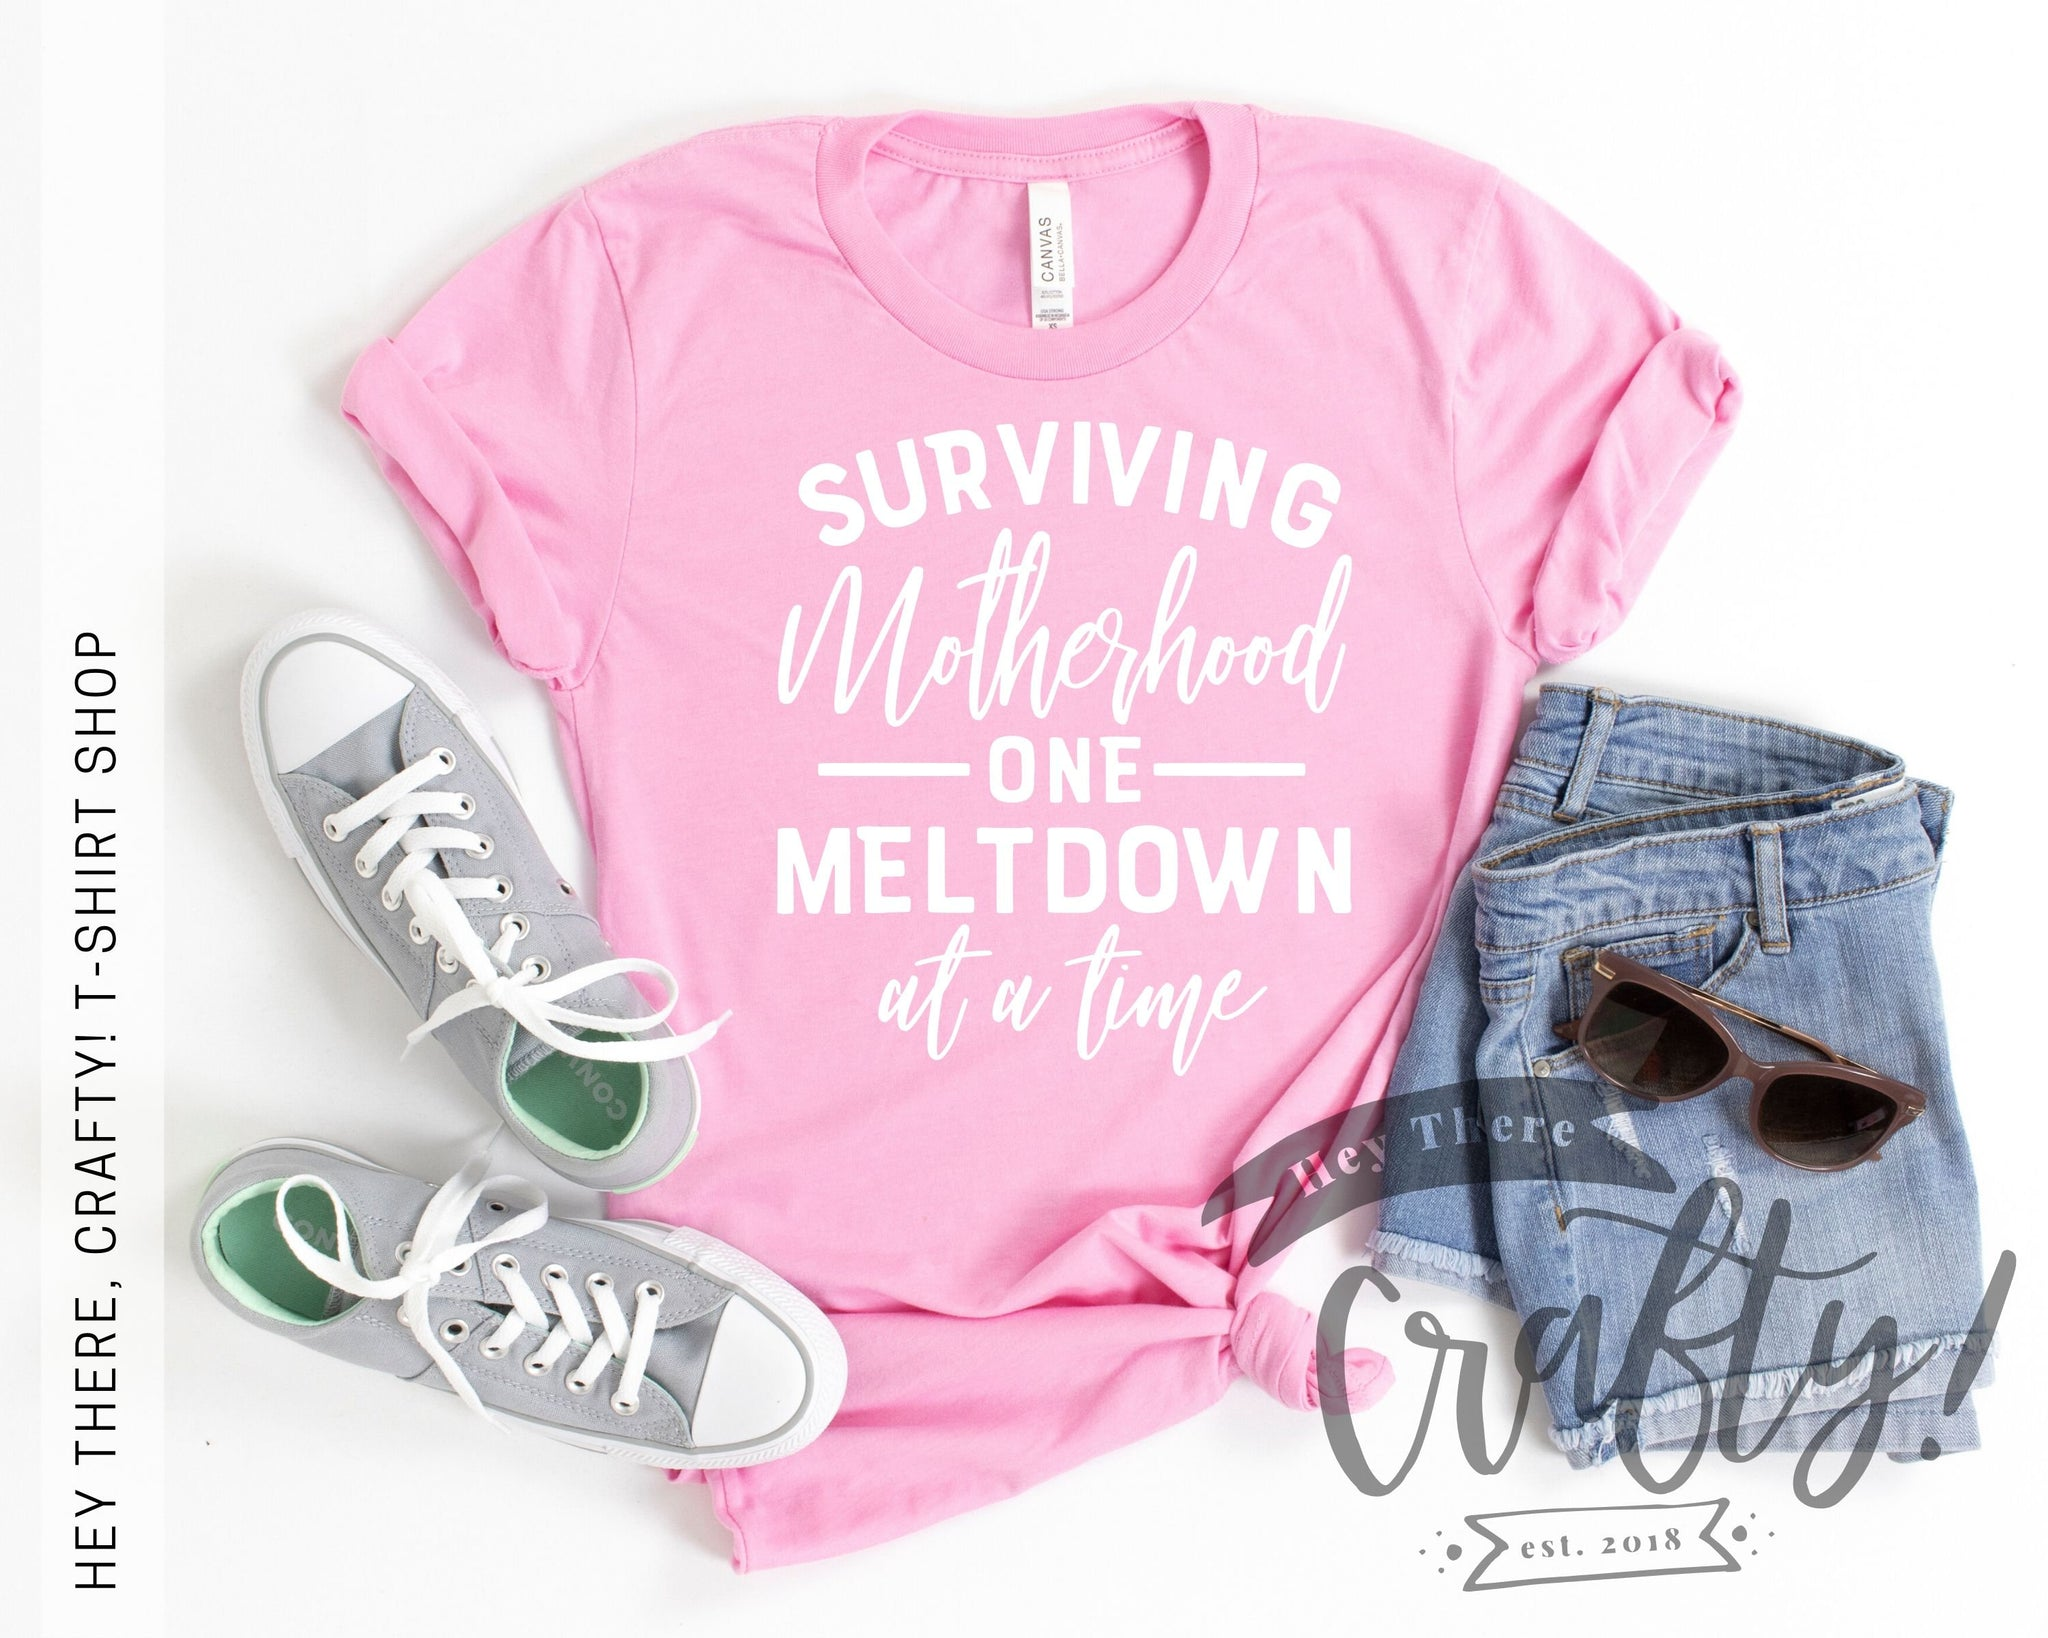 Surviving Motherhood One Meltdown at a Time T-Shirt